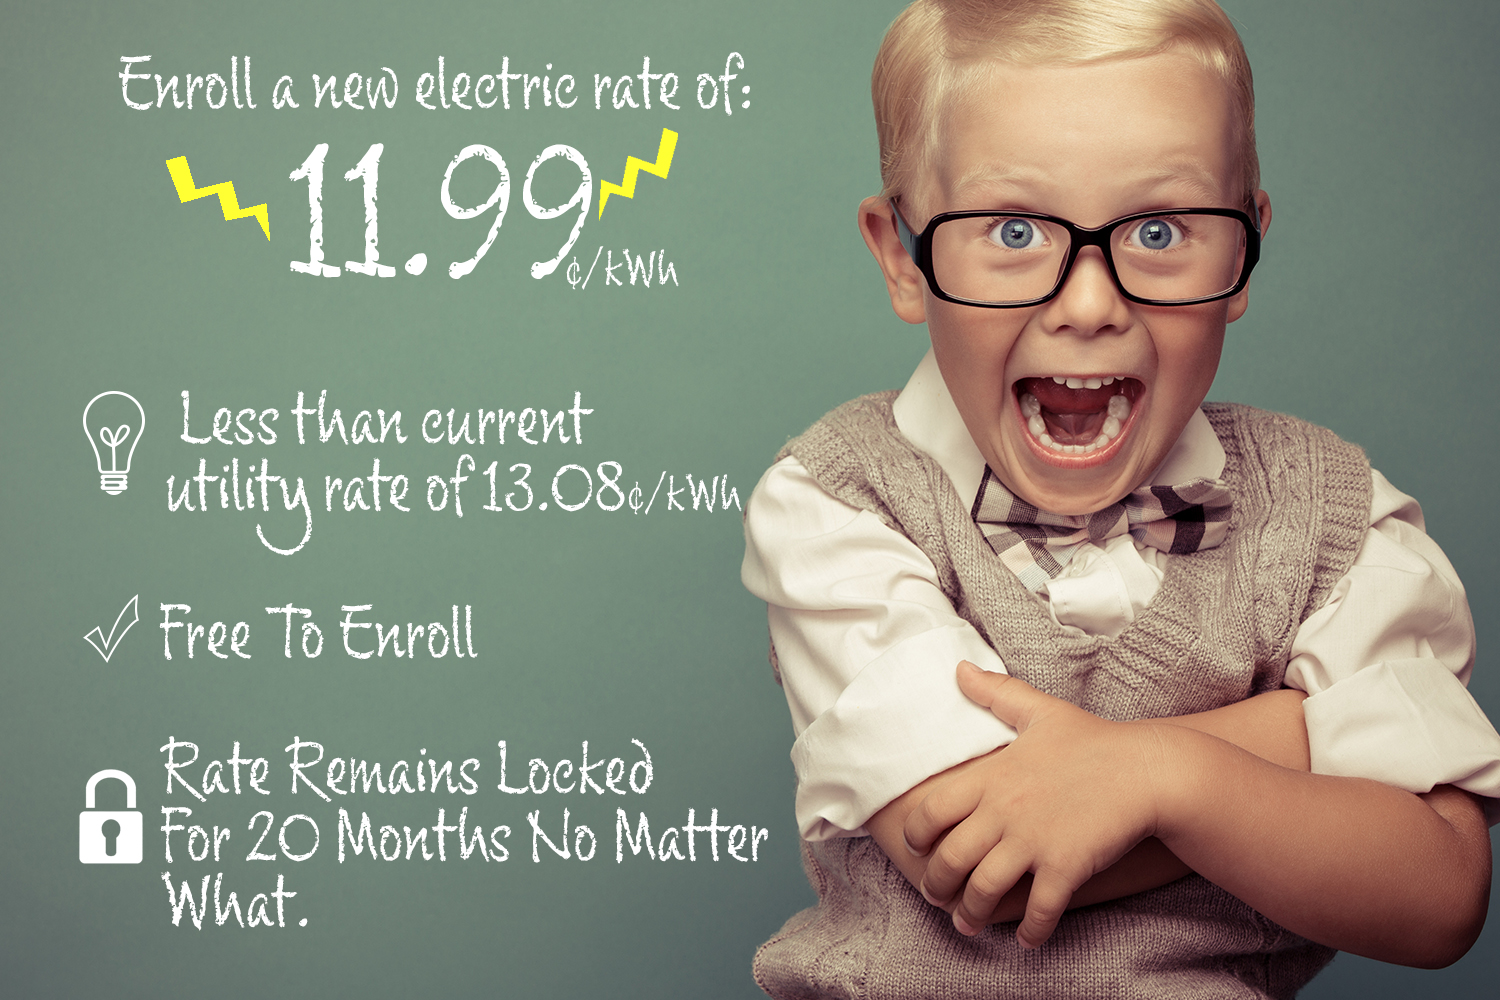 Town Square Energy Massachusetts Electric Rates